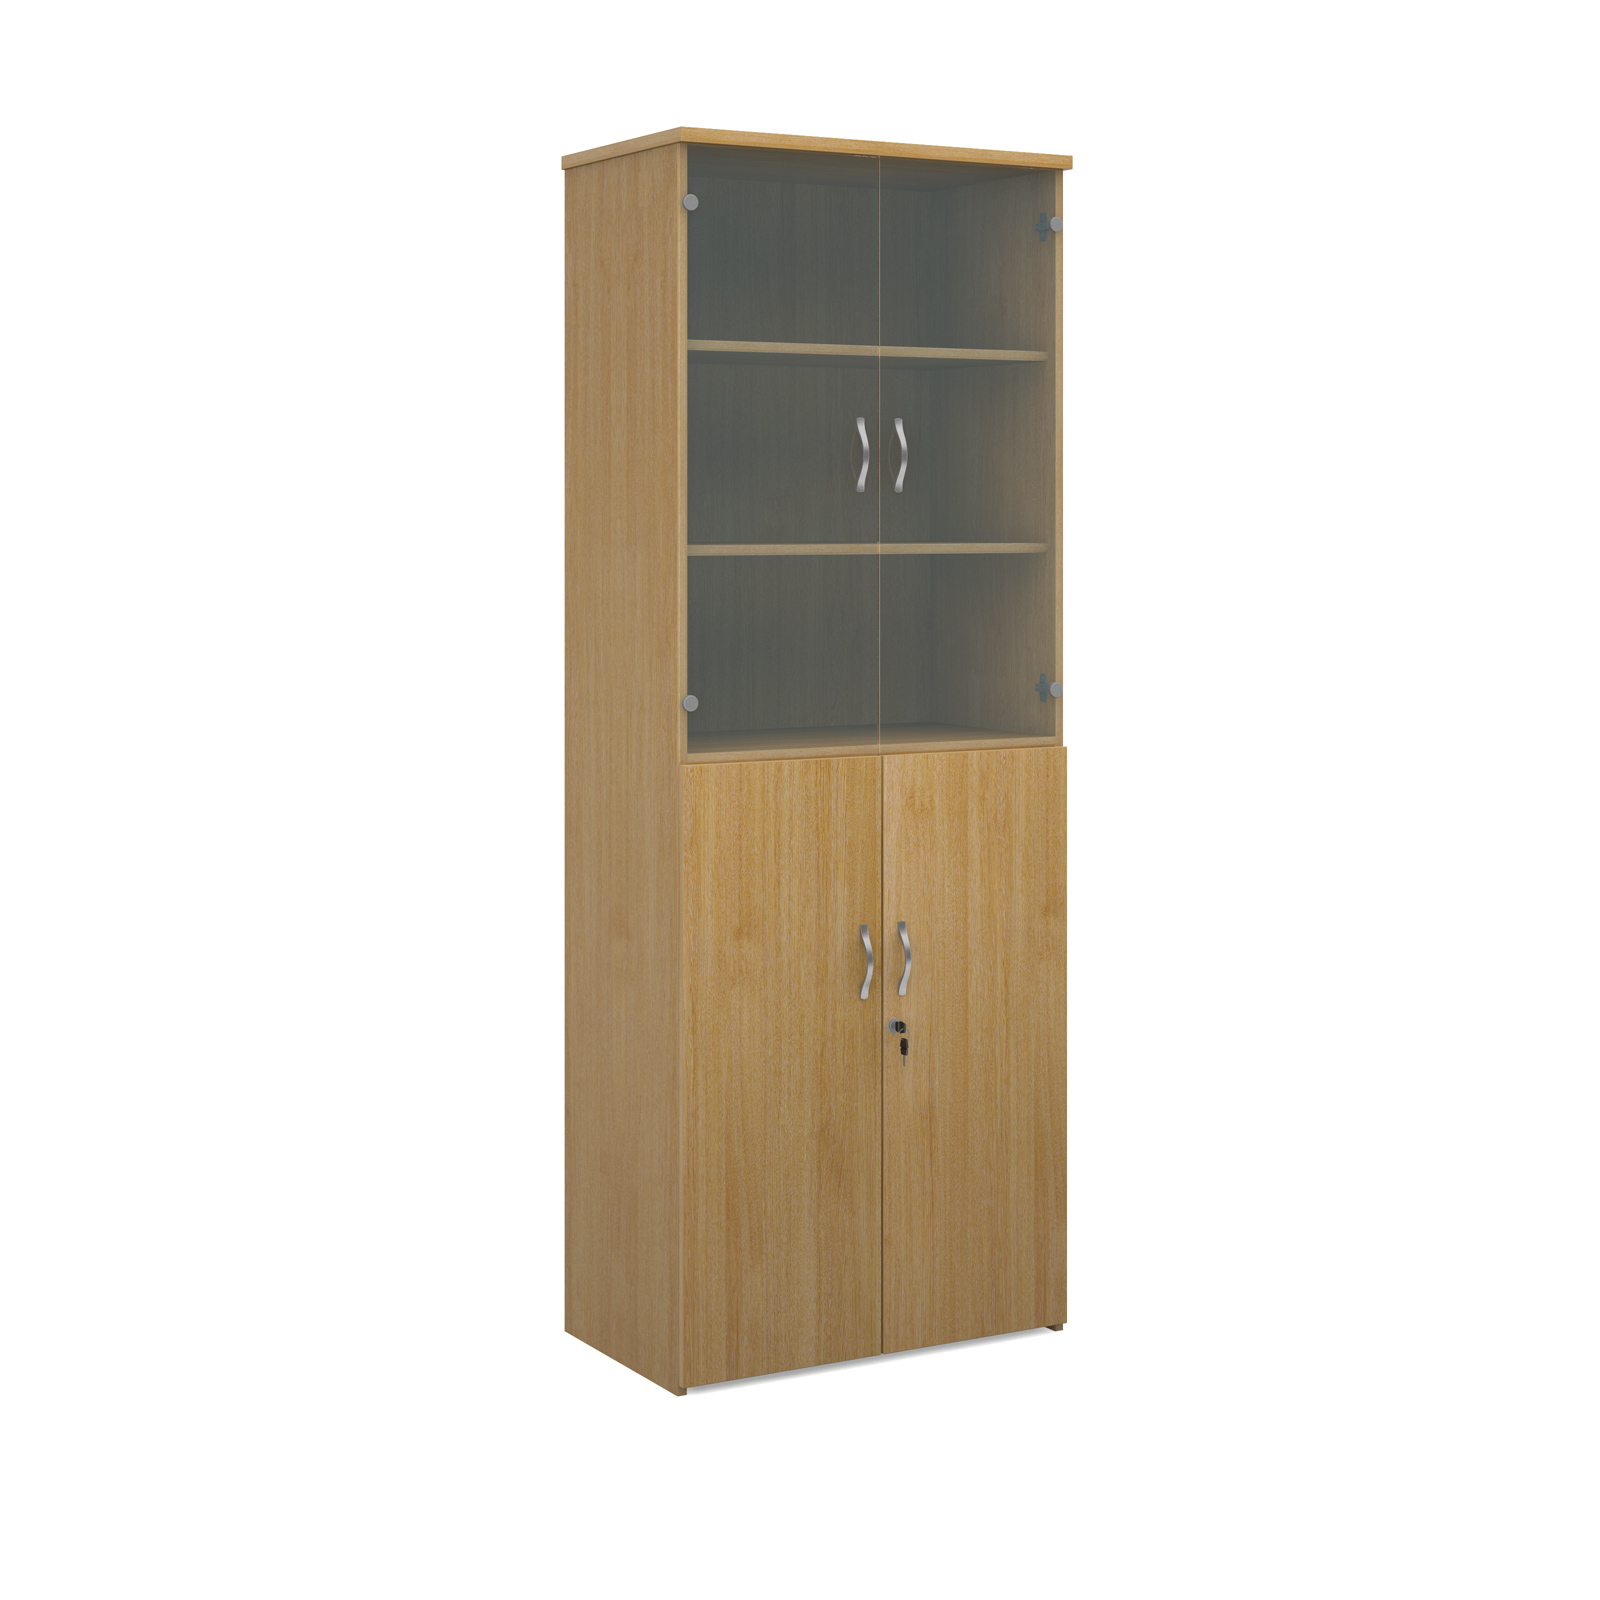 2140mm high combination unit with glass and wood doors in oak